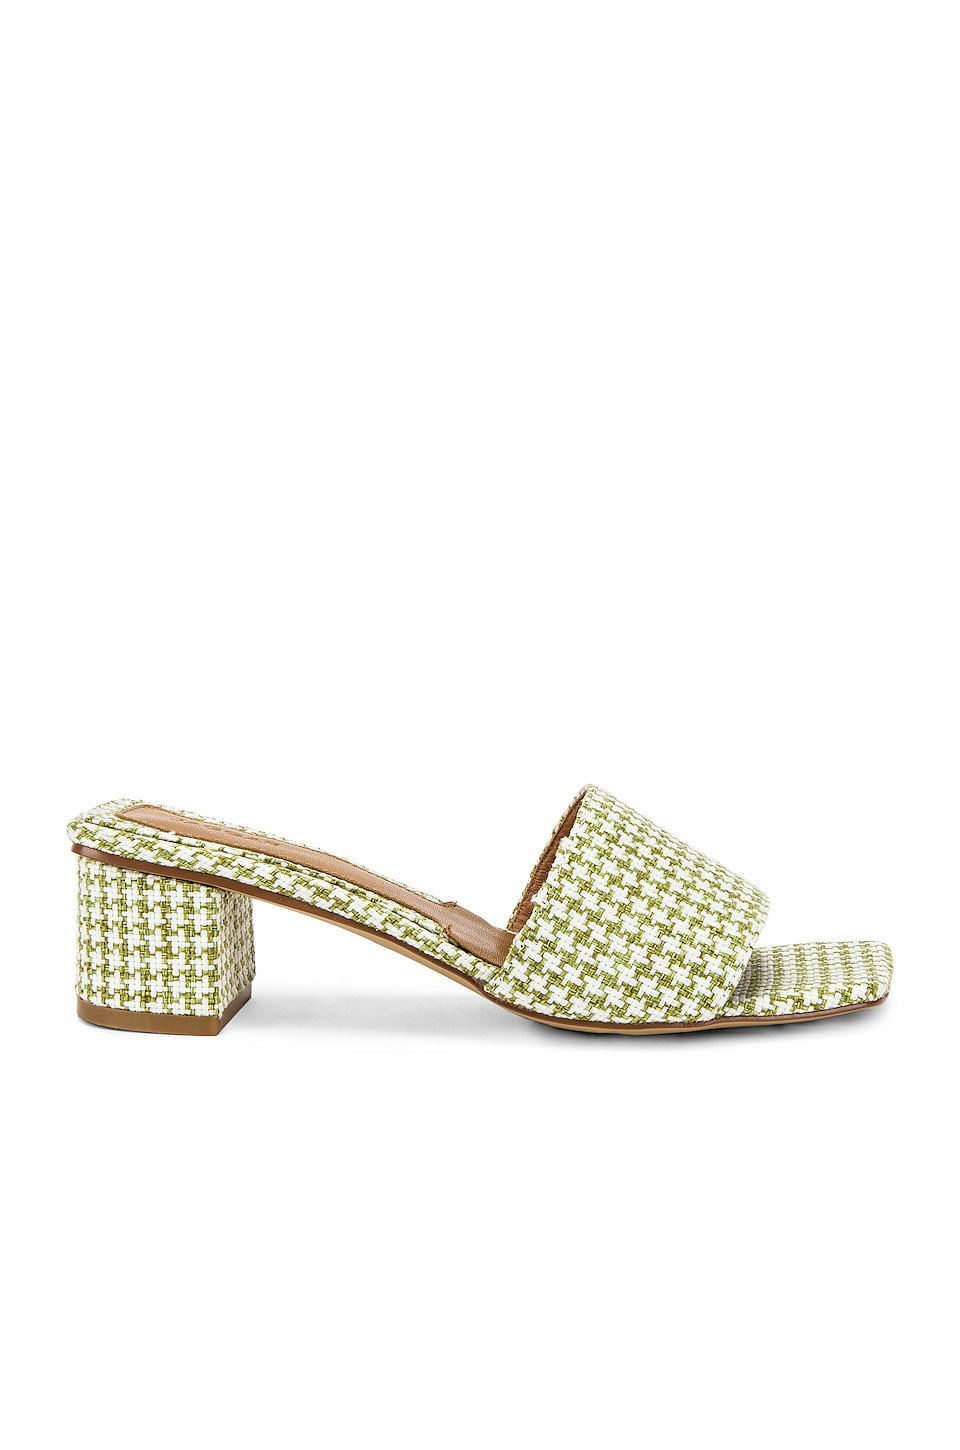 Meadow Houndstooth Sandal